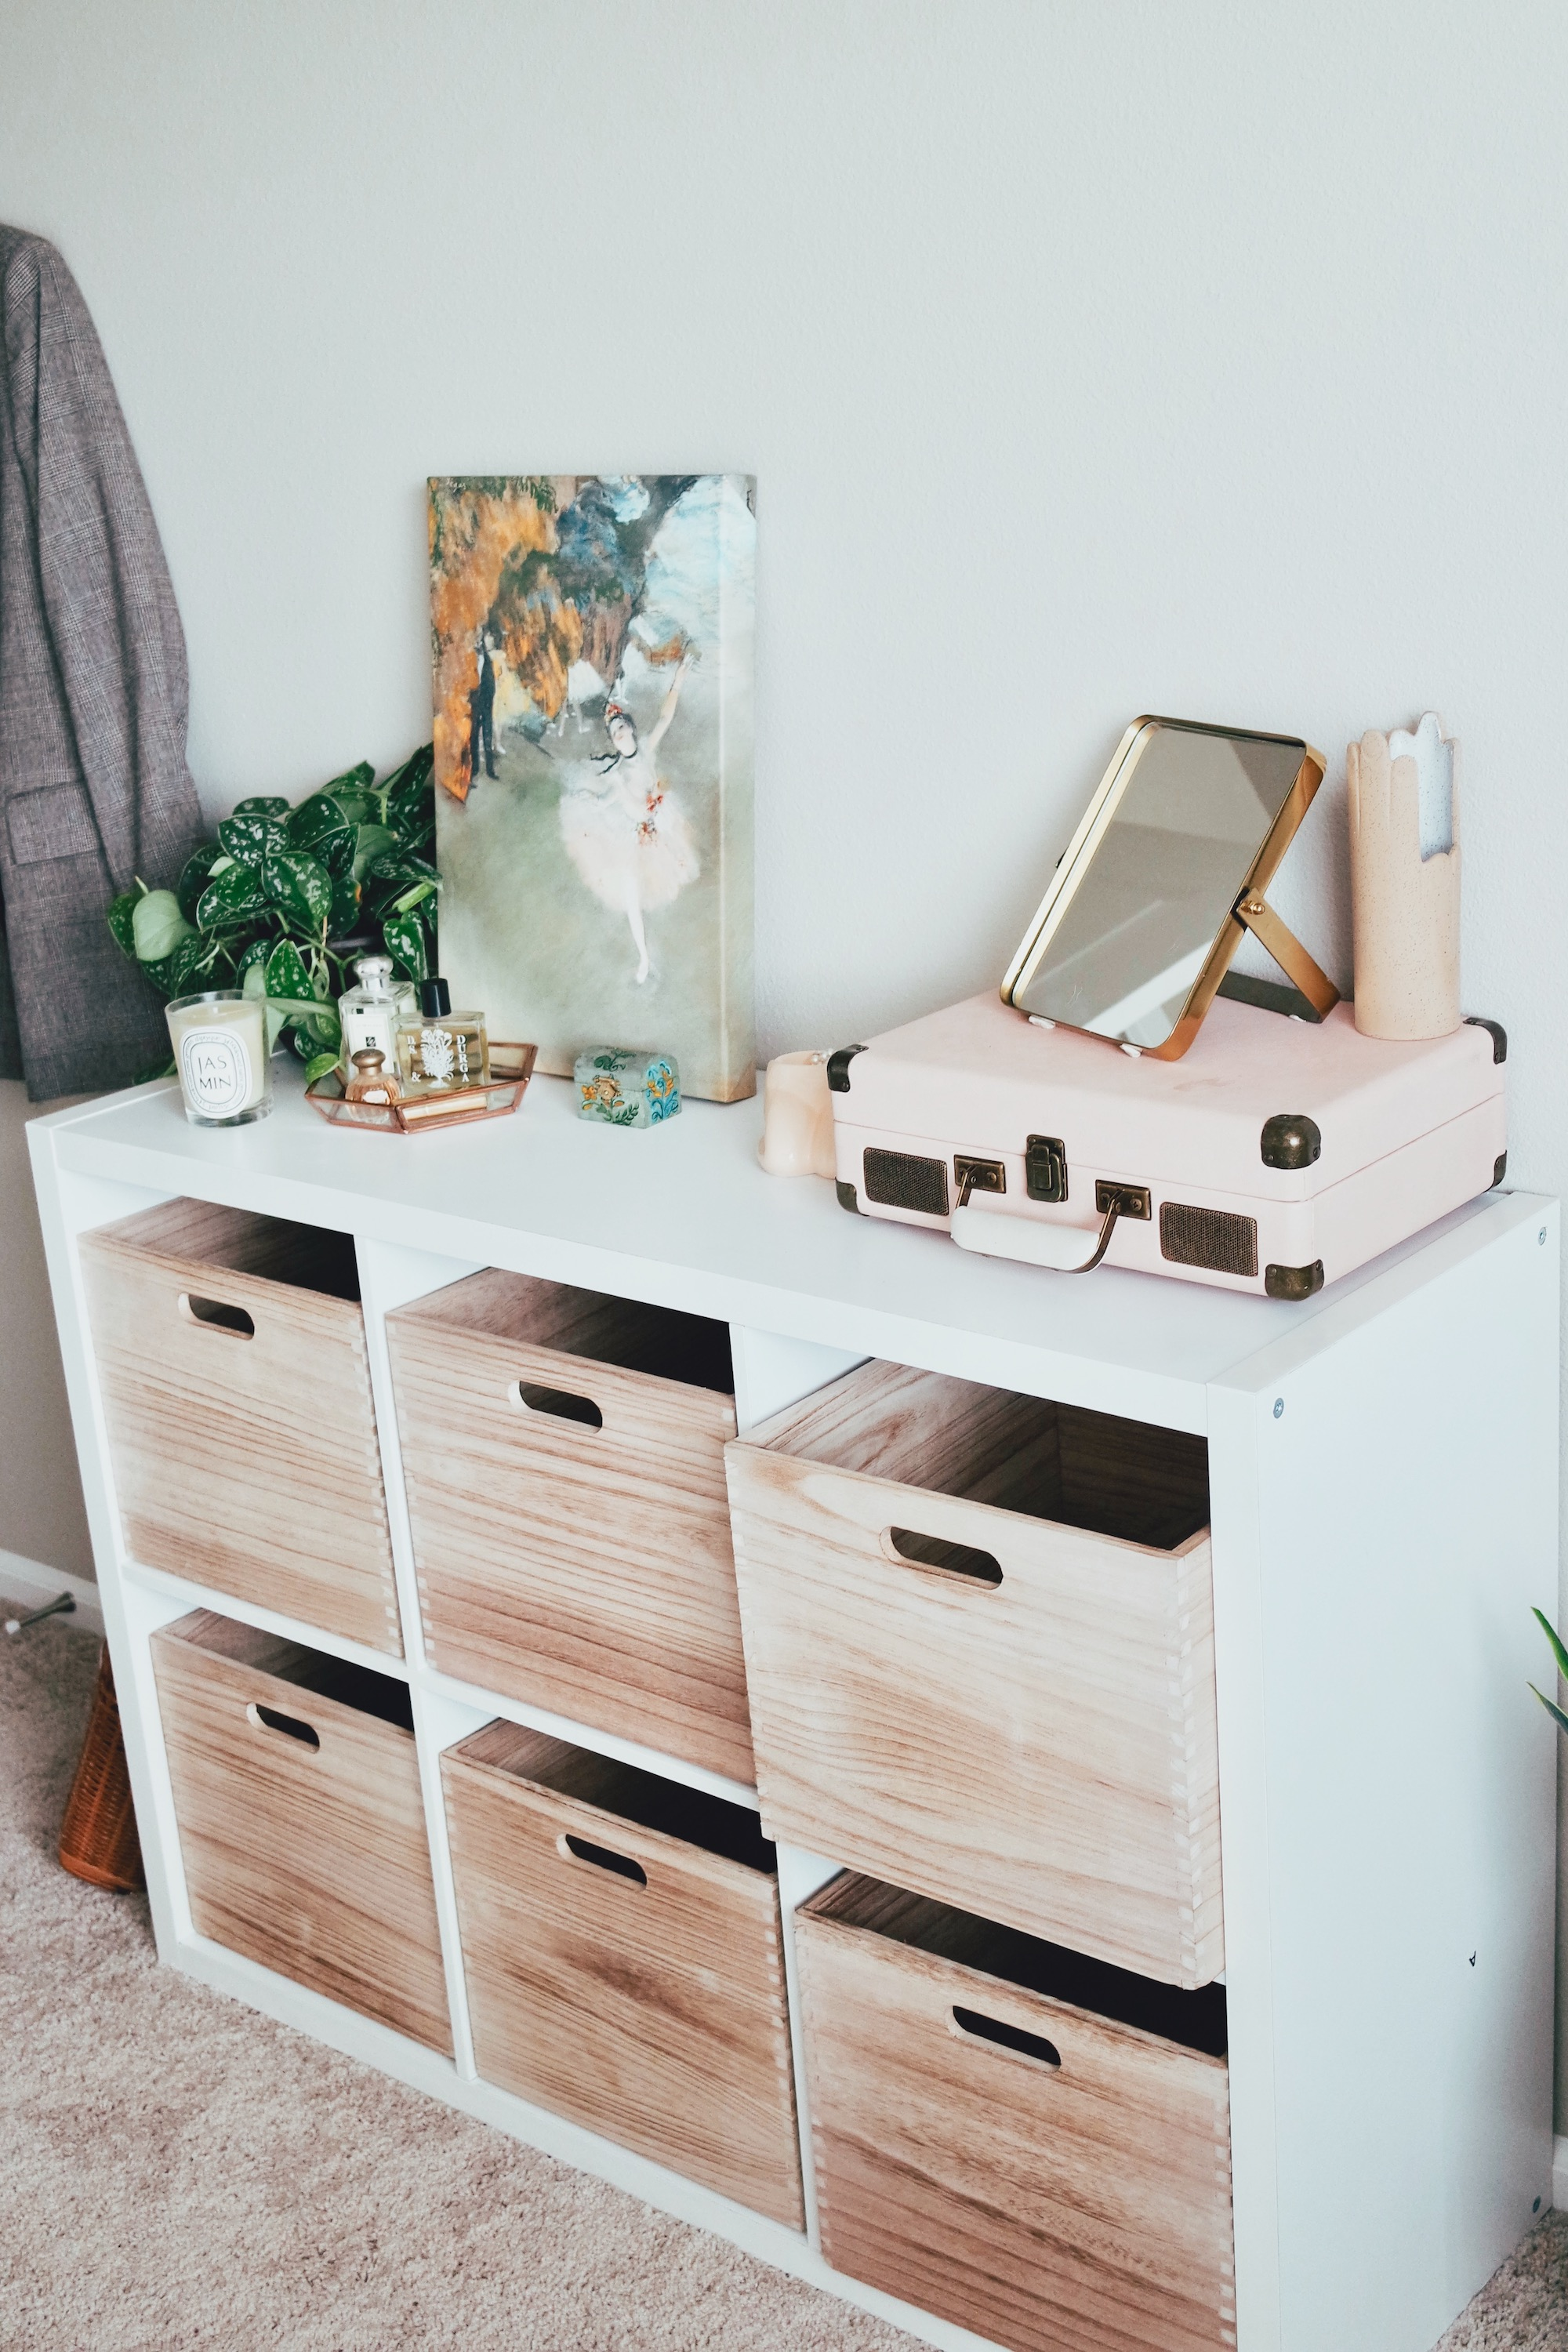 Cubby Shelves & Crates - Target